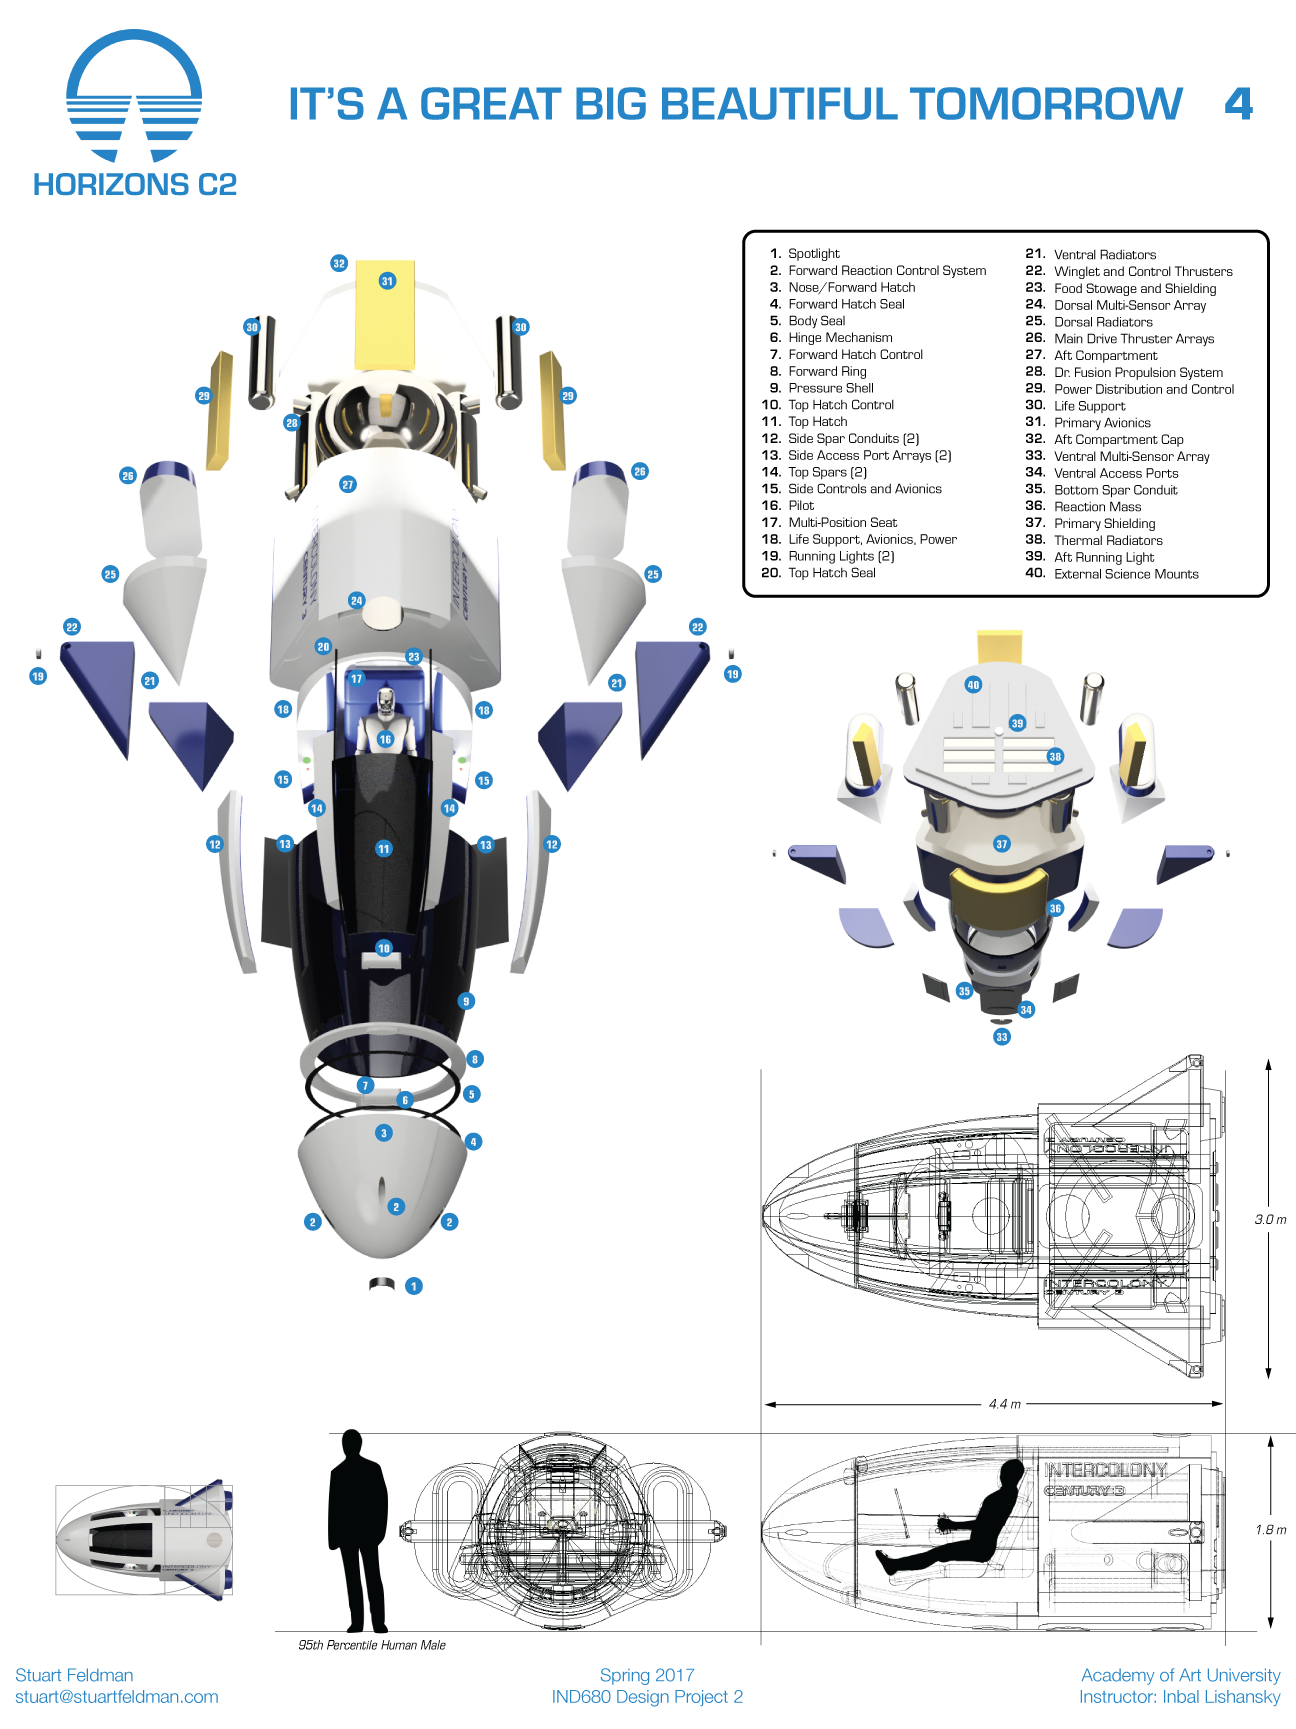 Here is the exploded view of the vehicle. I had an especially fun time fleshing out the aft compartment of the vehicle, including  Dr. Fusion  and its accompanying systems. The bottom of the board shows dimensions of the vehicle with a 95th percentile human male for scale.